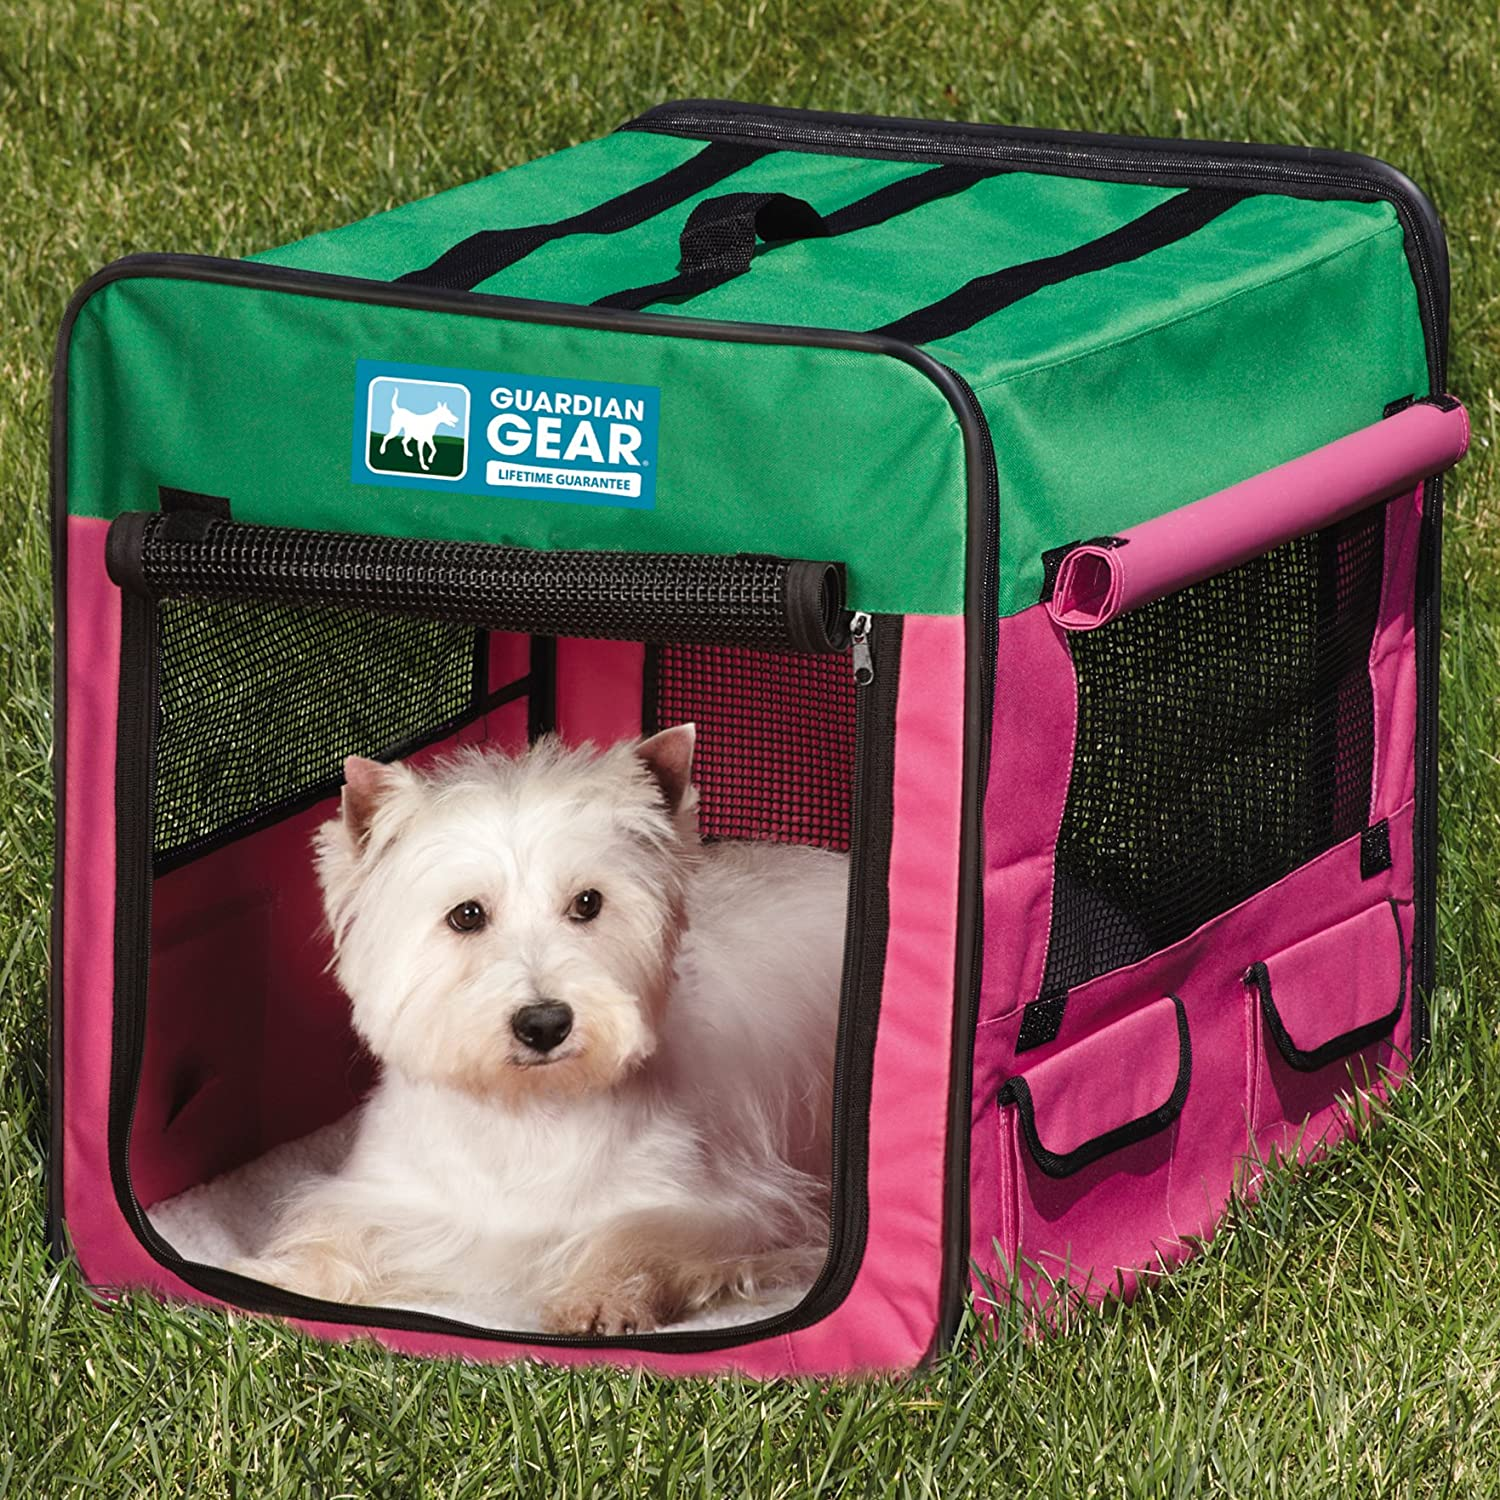 Guardian Gear Collapsible Crates for Dogs and Pets Extra Small, Purple Turquoise; Small, Pink Green; Medium, Lime Green bluee; Large, orange Yellow; Extra Large, Red bluee